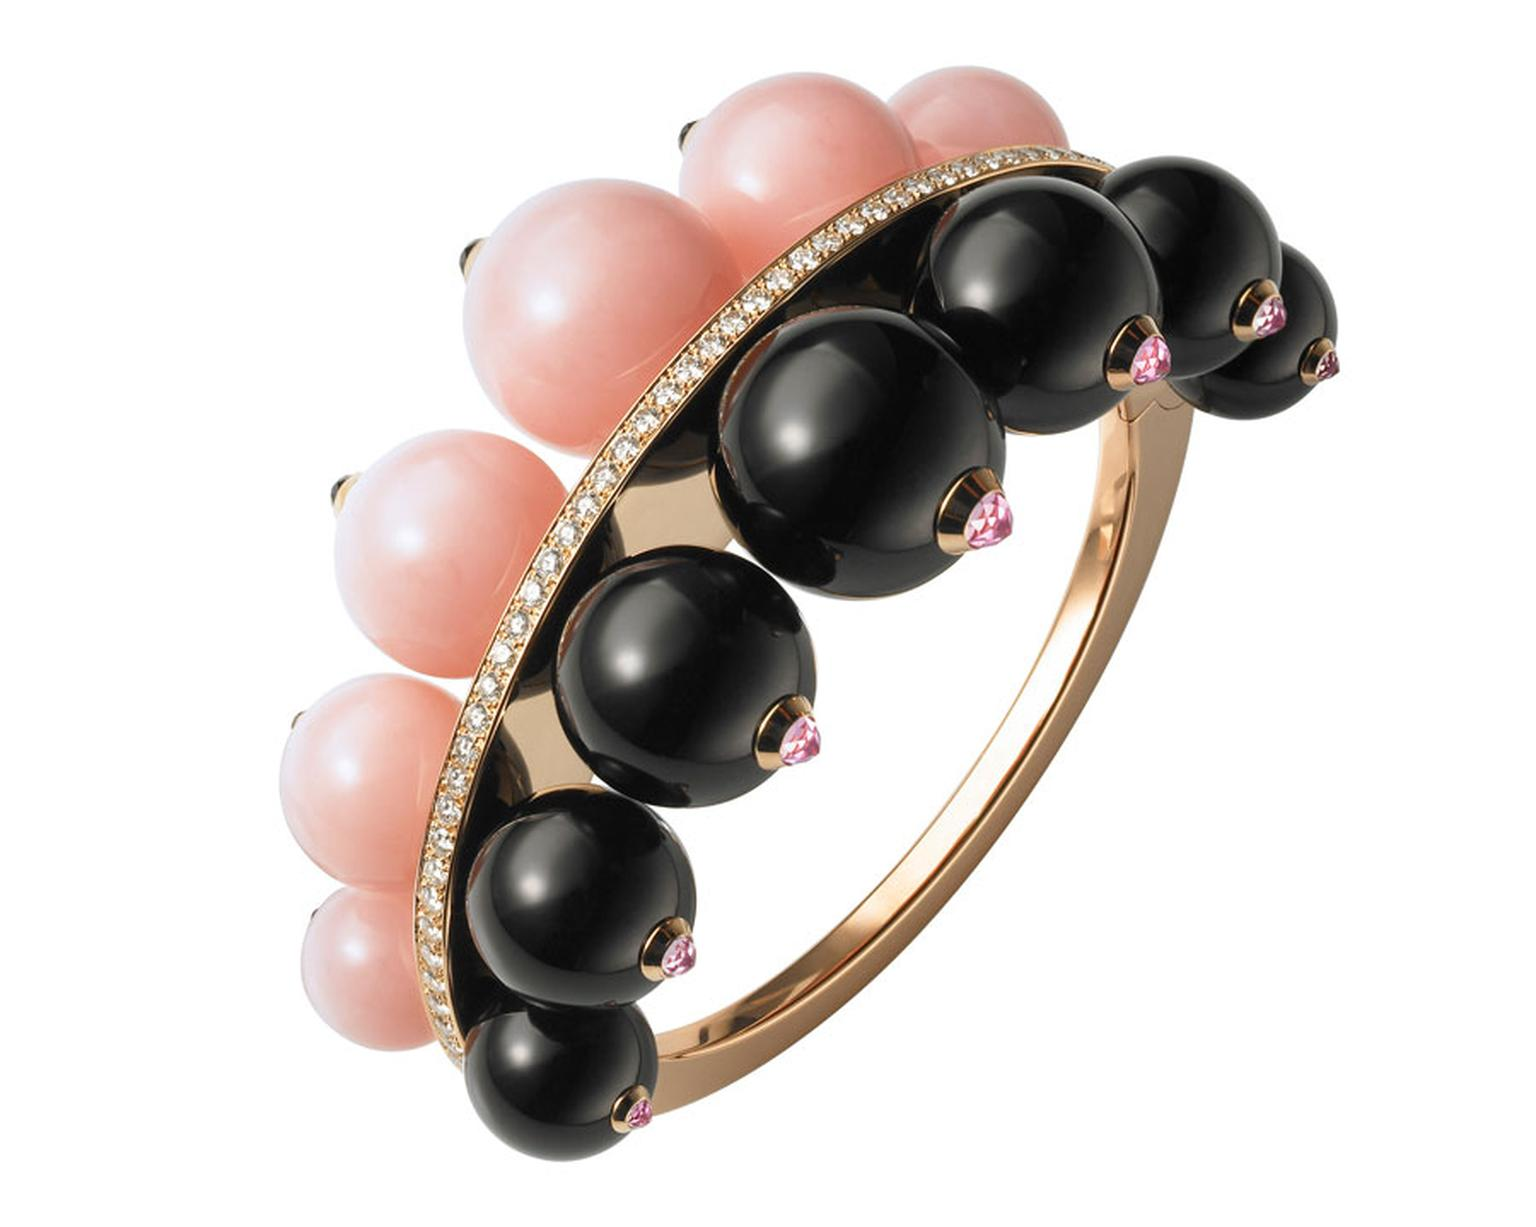 Cartier bracelet from the Évasions Joaillières Collection in pink gold, set with pink opals, onyx and diamonds